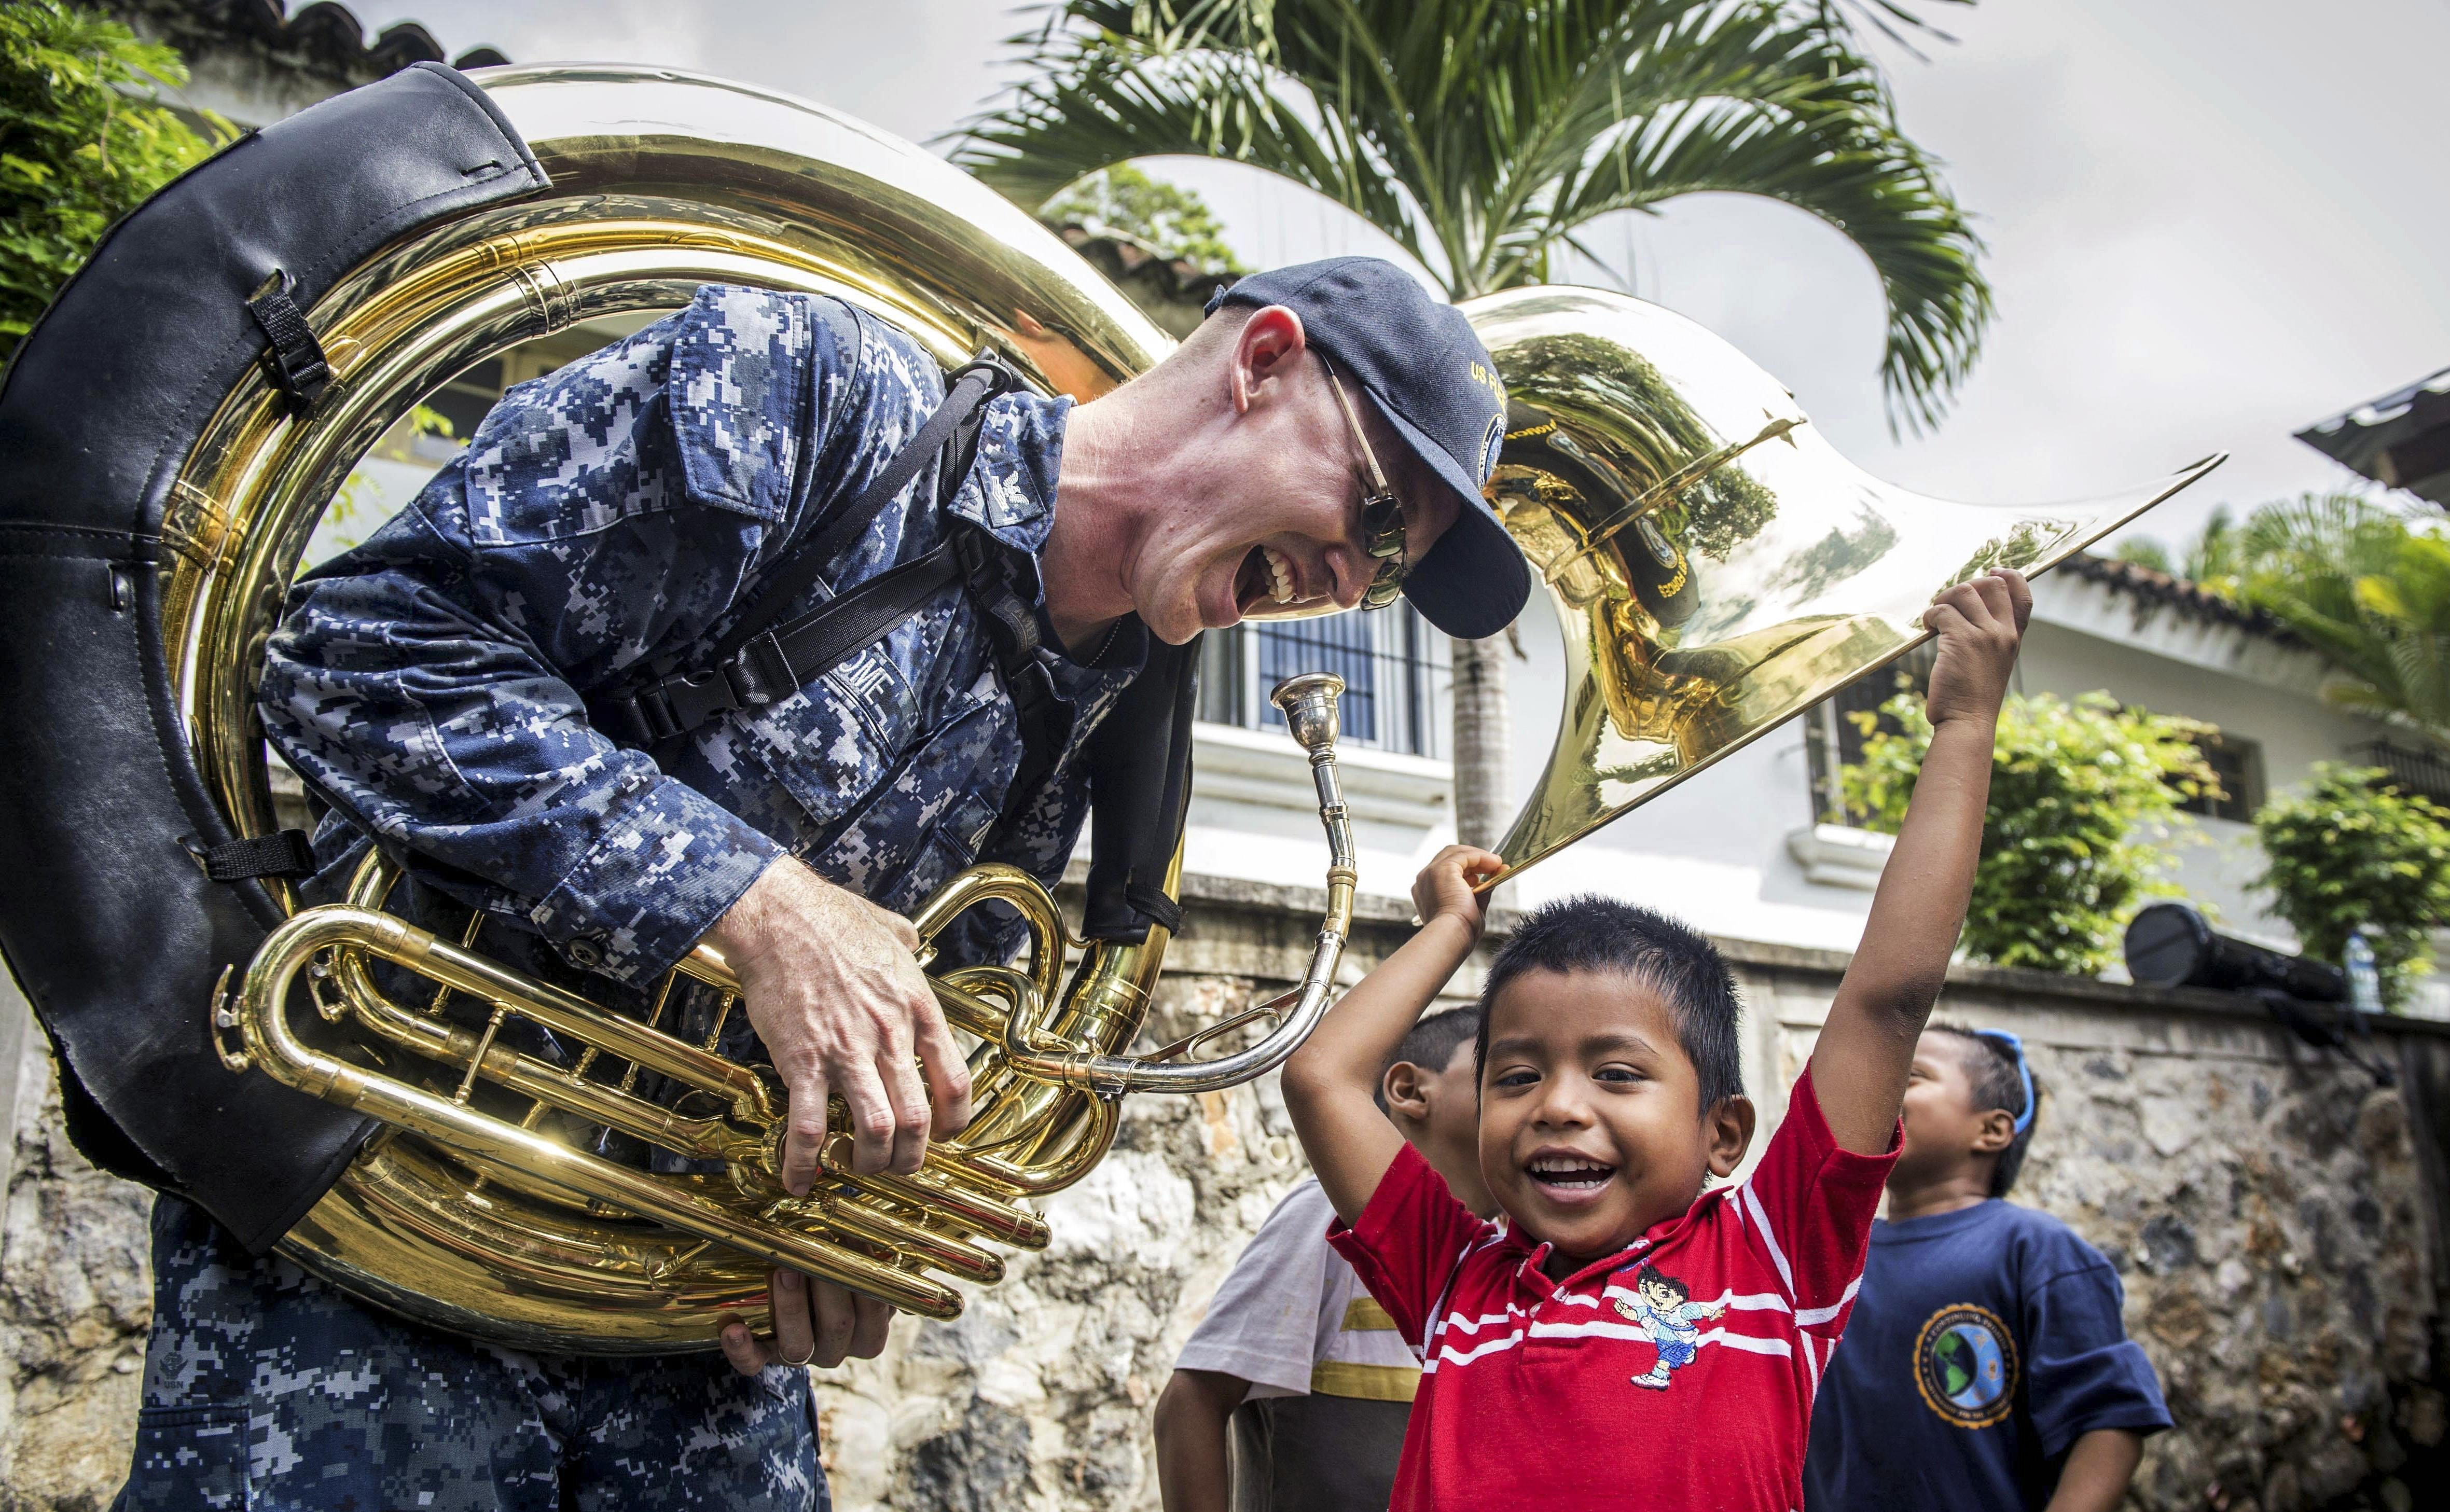 Navy Petty Officer 1st Class Christopher Jerome plays with a child during Continuing Promise 2017 while visiting an orphanage in Puerto Barrios, Guatemala, Feb. 6, 2017.Navy Petty Officer 1st Class Christopher Jerome plays with a child during Continuing Promise 2017 while visiting an orphanage in Puerto Barrios, Guatemala, Feb. 6, 2017.